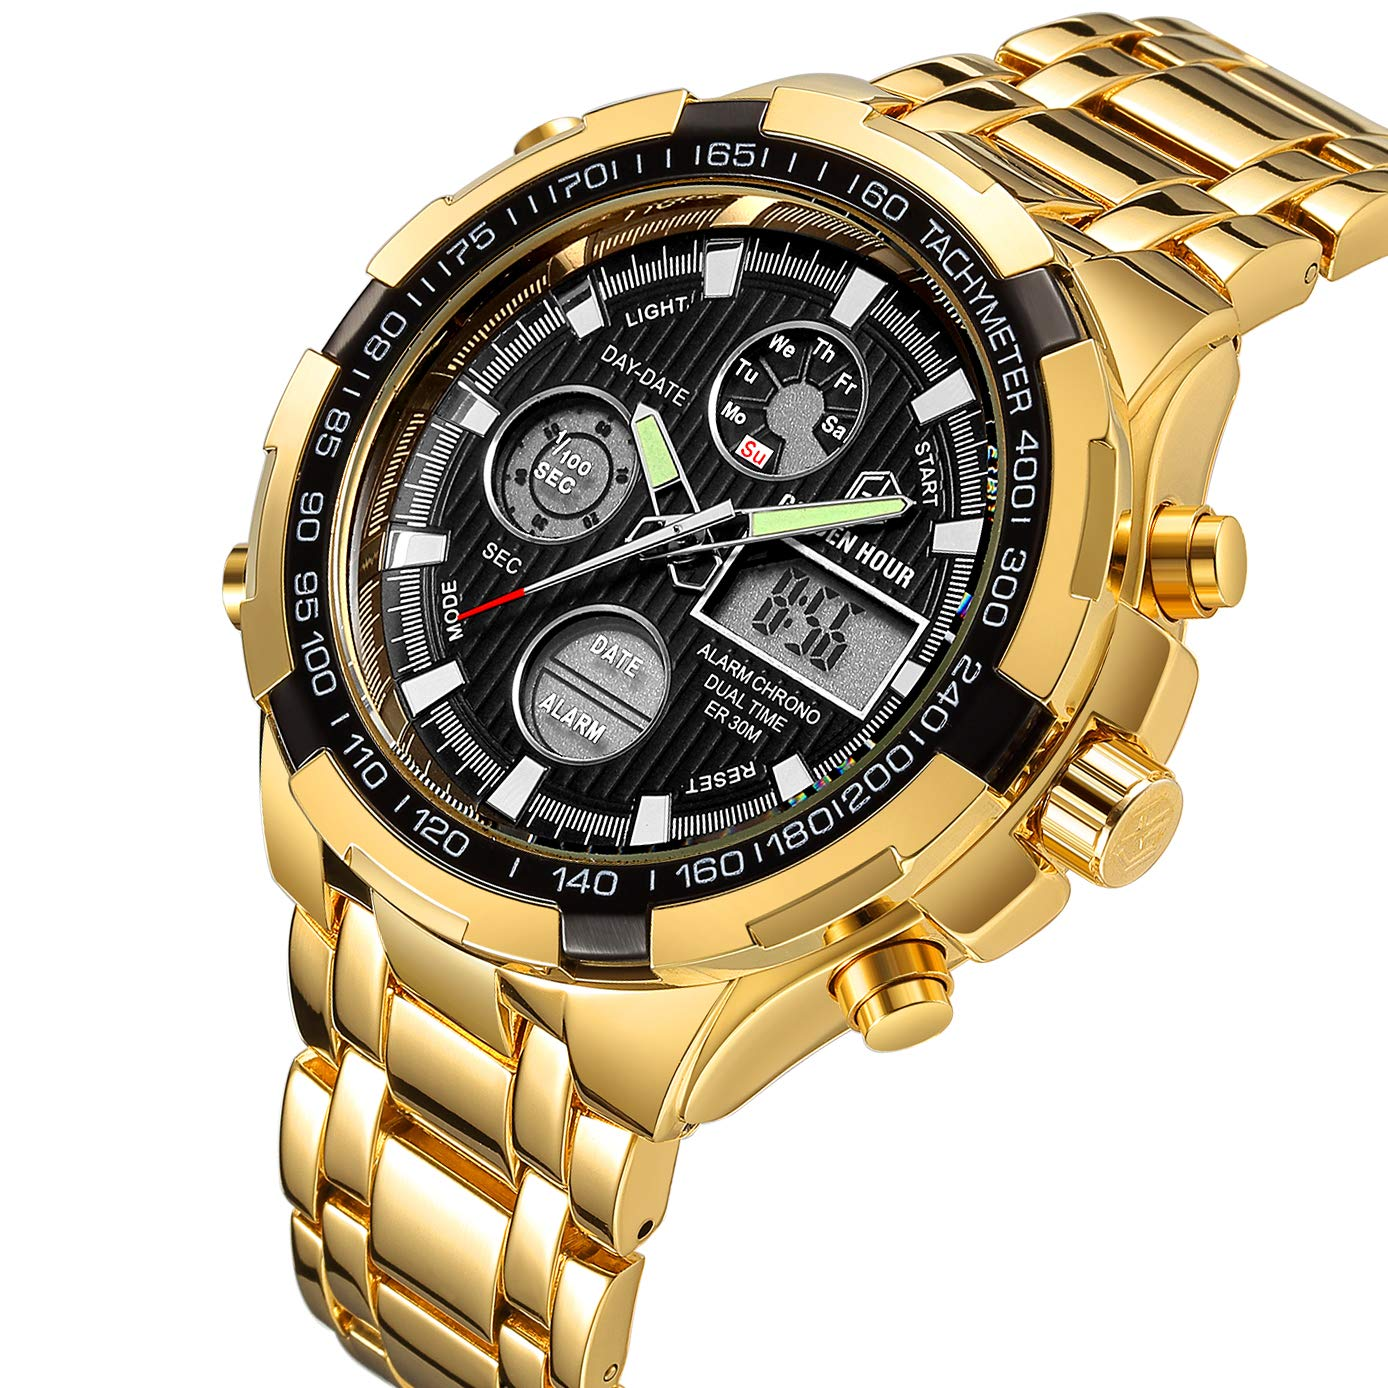 5a3987cb8 Amazon.com  Tamlee Luxury Full Steel Analog Digital Watches Men Led Male  Outdoor Sport Military Wristwatch Gold Black  Watches